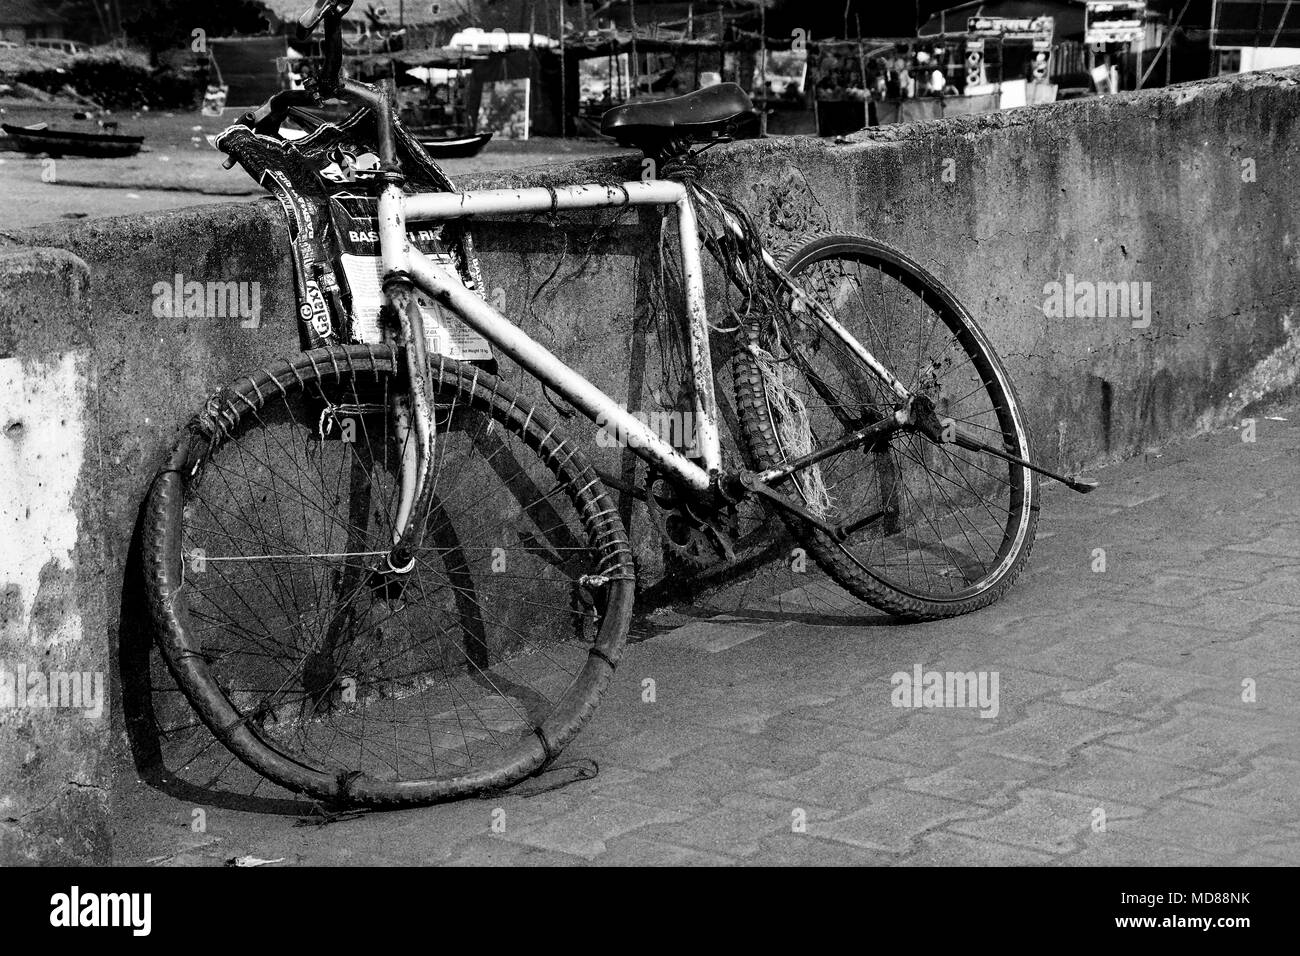 A bicycle that has a resourceful owner! India - Stock Image